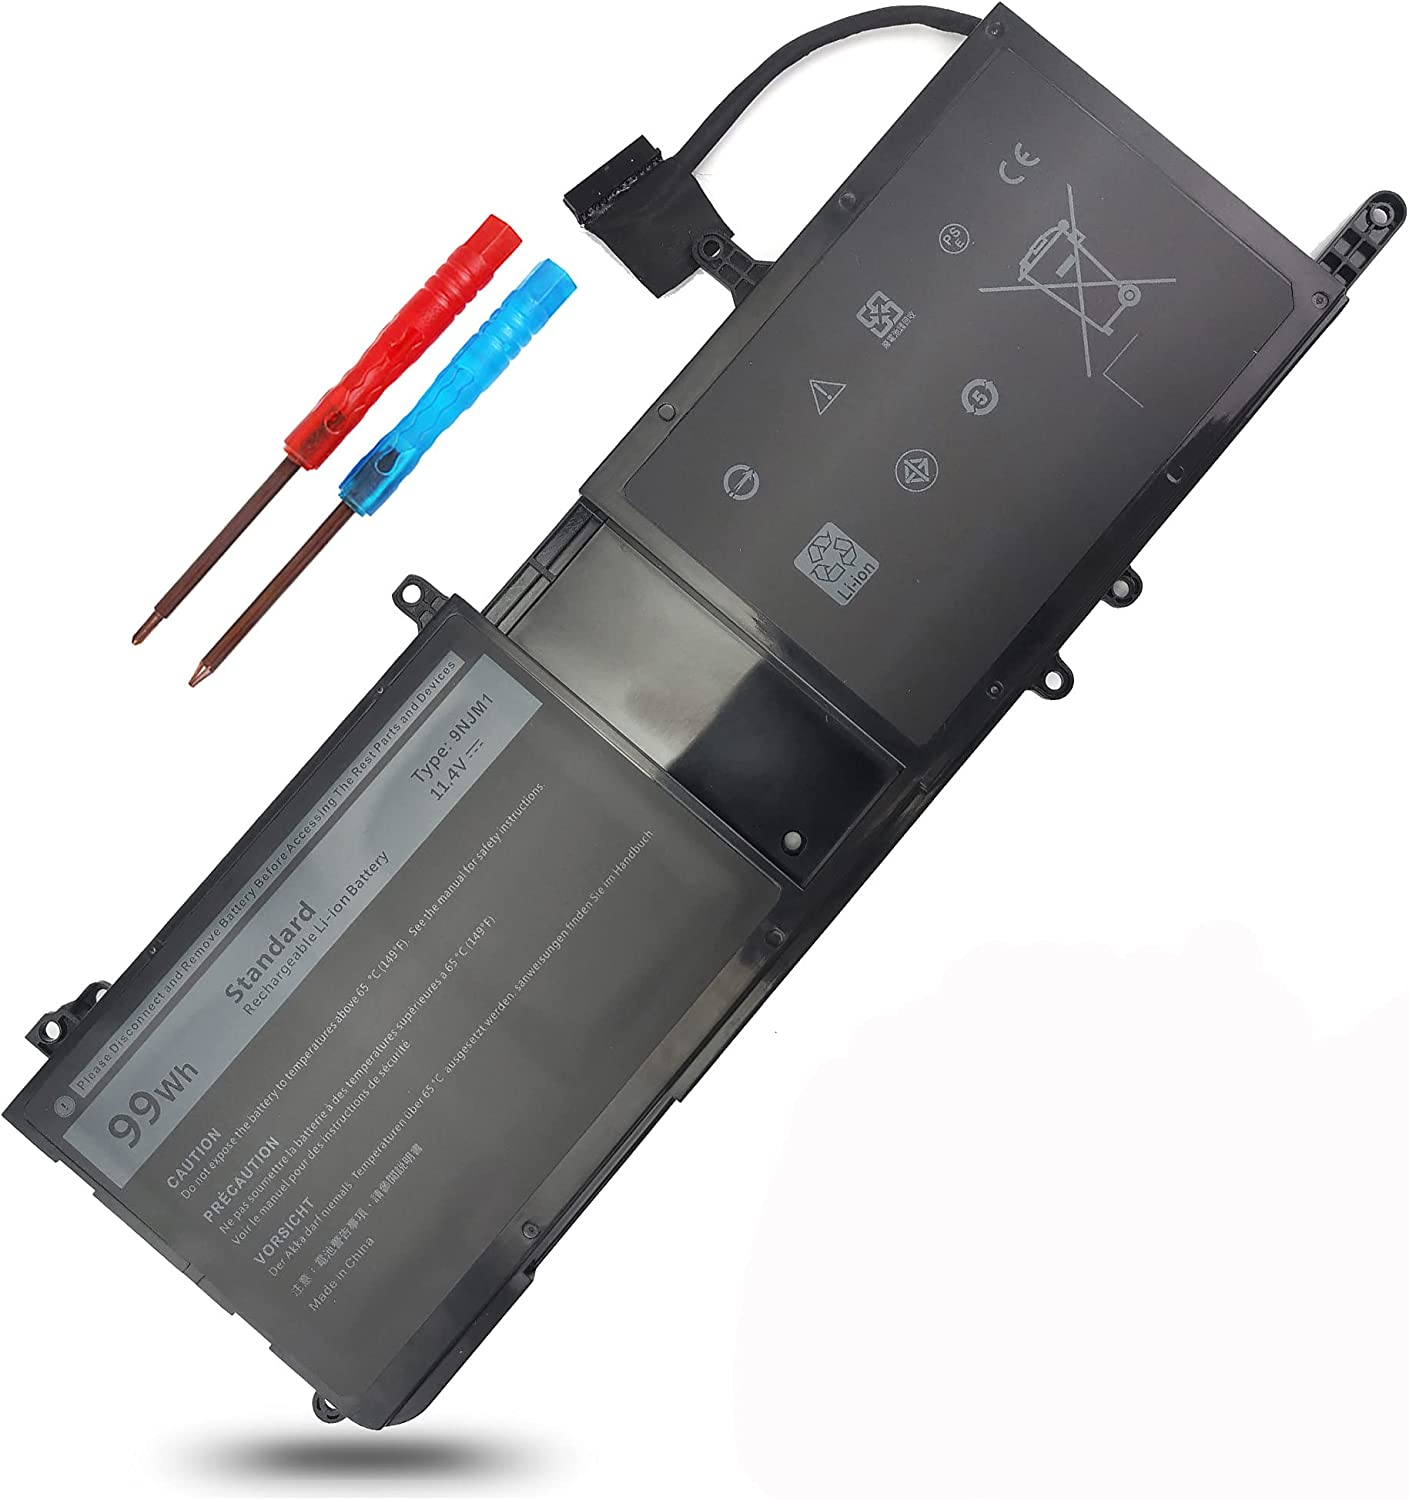 Type 9NJM1 Battery Replacement for Dell Alienware 17 R4 R5 15 R3 R4 546FF 44T2R P31E P69F P31E001 P31E002 P69F001 P69F002 HF250 MG2YH 01D82 0546FF 0HF250 0MG2YH 99Wh